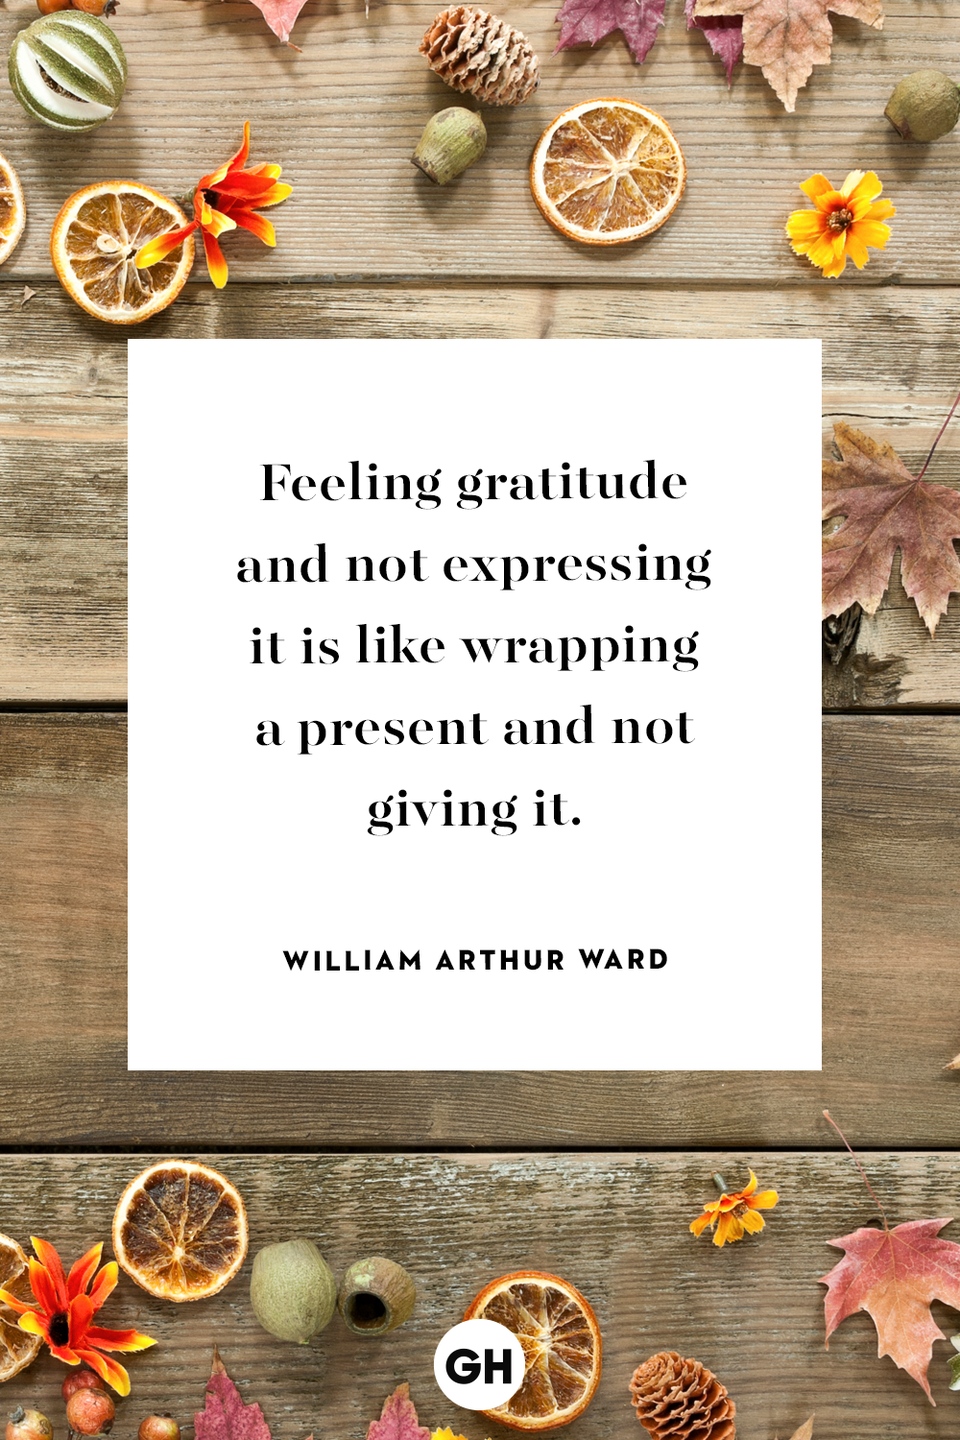 <p>Feeling gratitude and not expressing it is like wrapping a present and not giving it.</p>